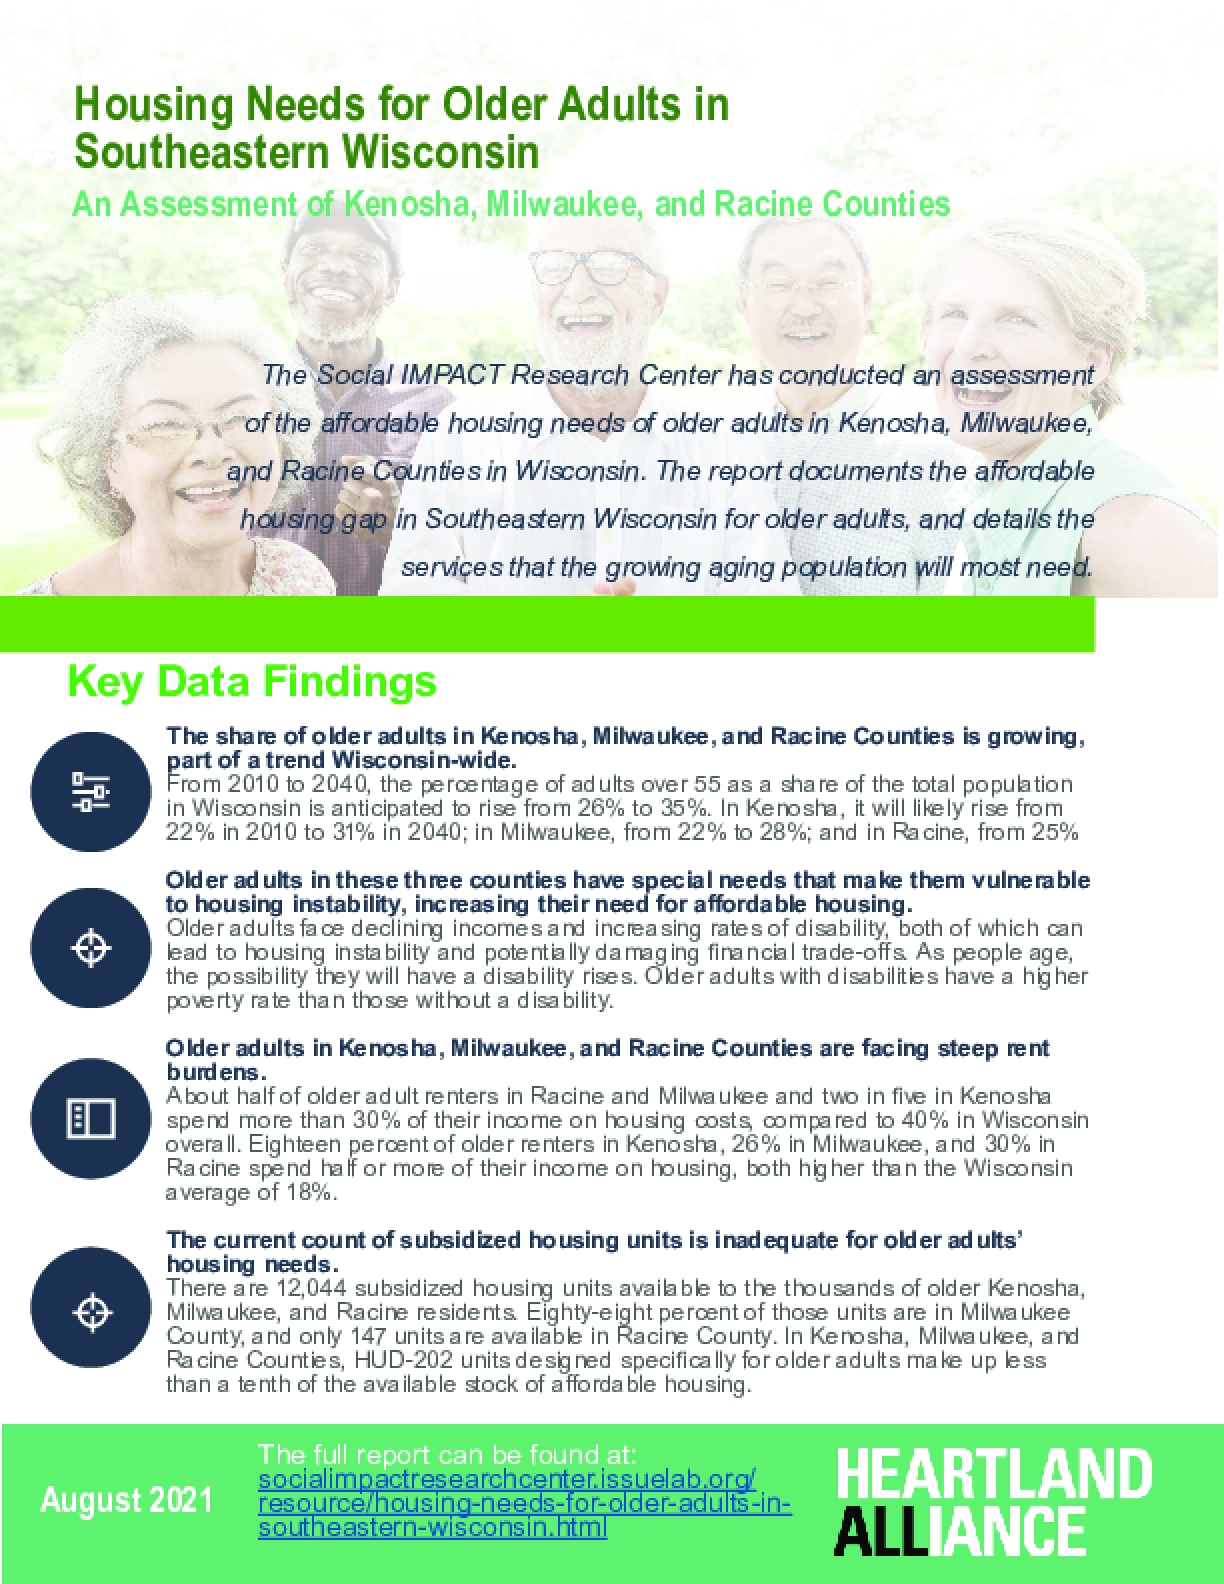 Housing Needs for Older Adults in Southeastern Wisconsin [Two-Pager]